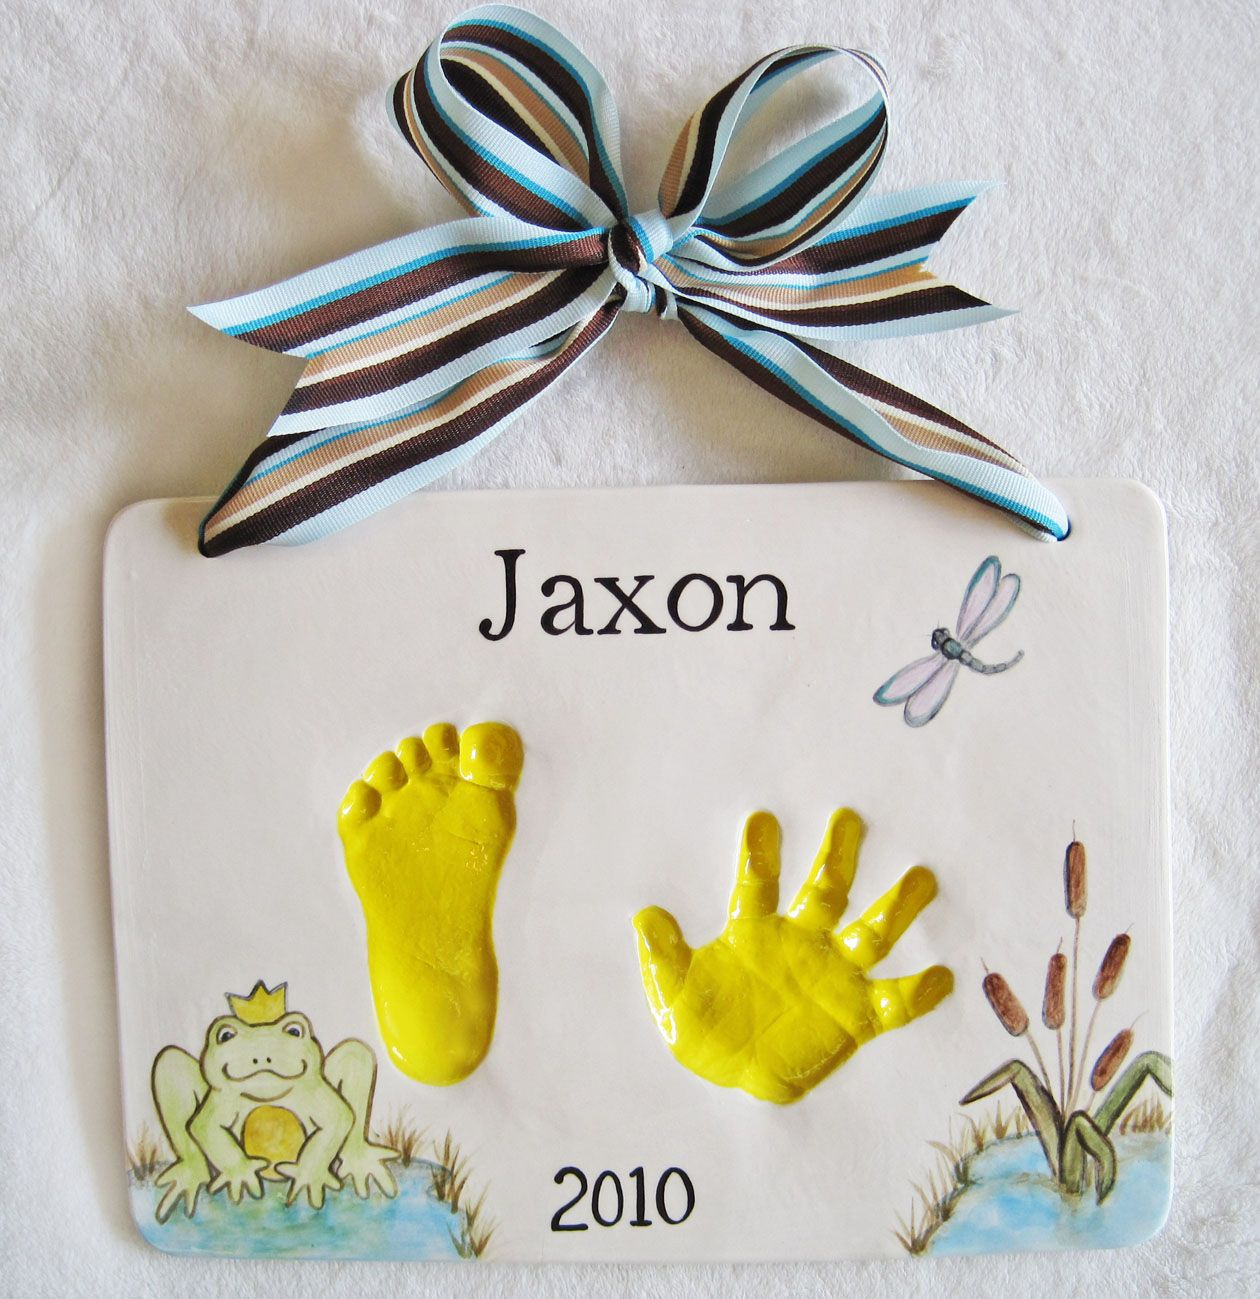 Could Make One Large Salt Dough Impression With Both Hand And Foot Impressions On One Frame I Baby Footprint Crafts Handprint Crafts Baby Hand And Foot Prints